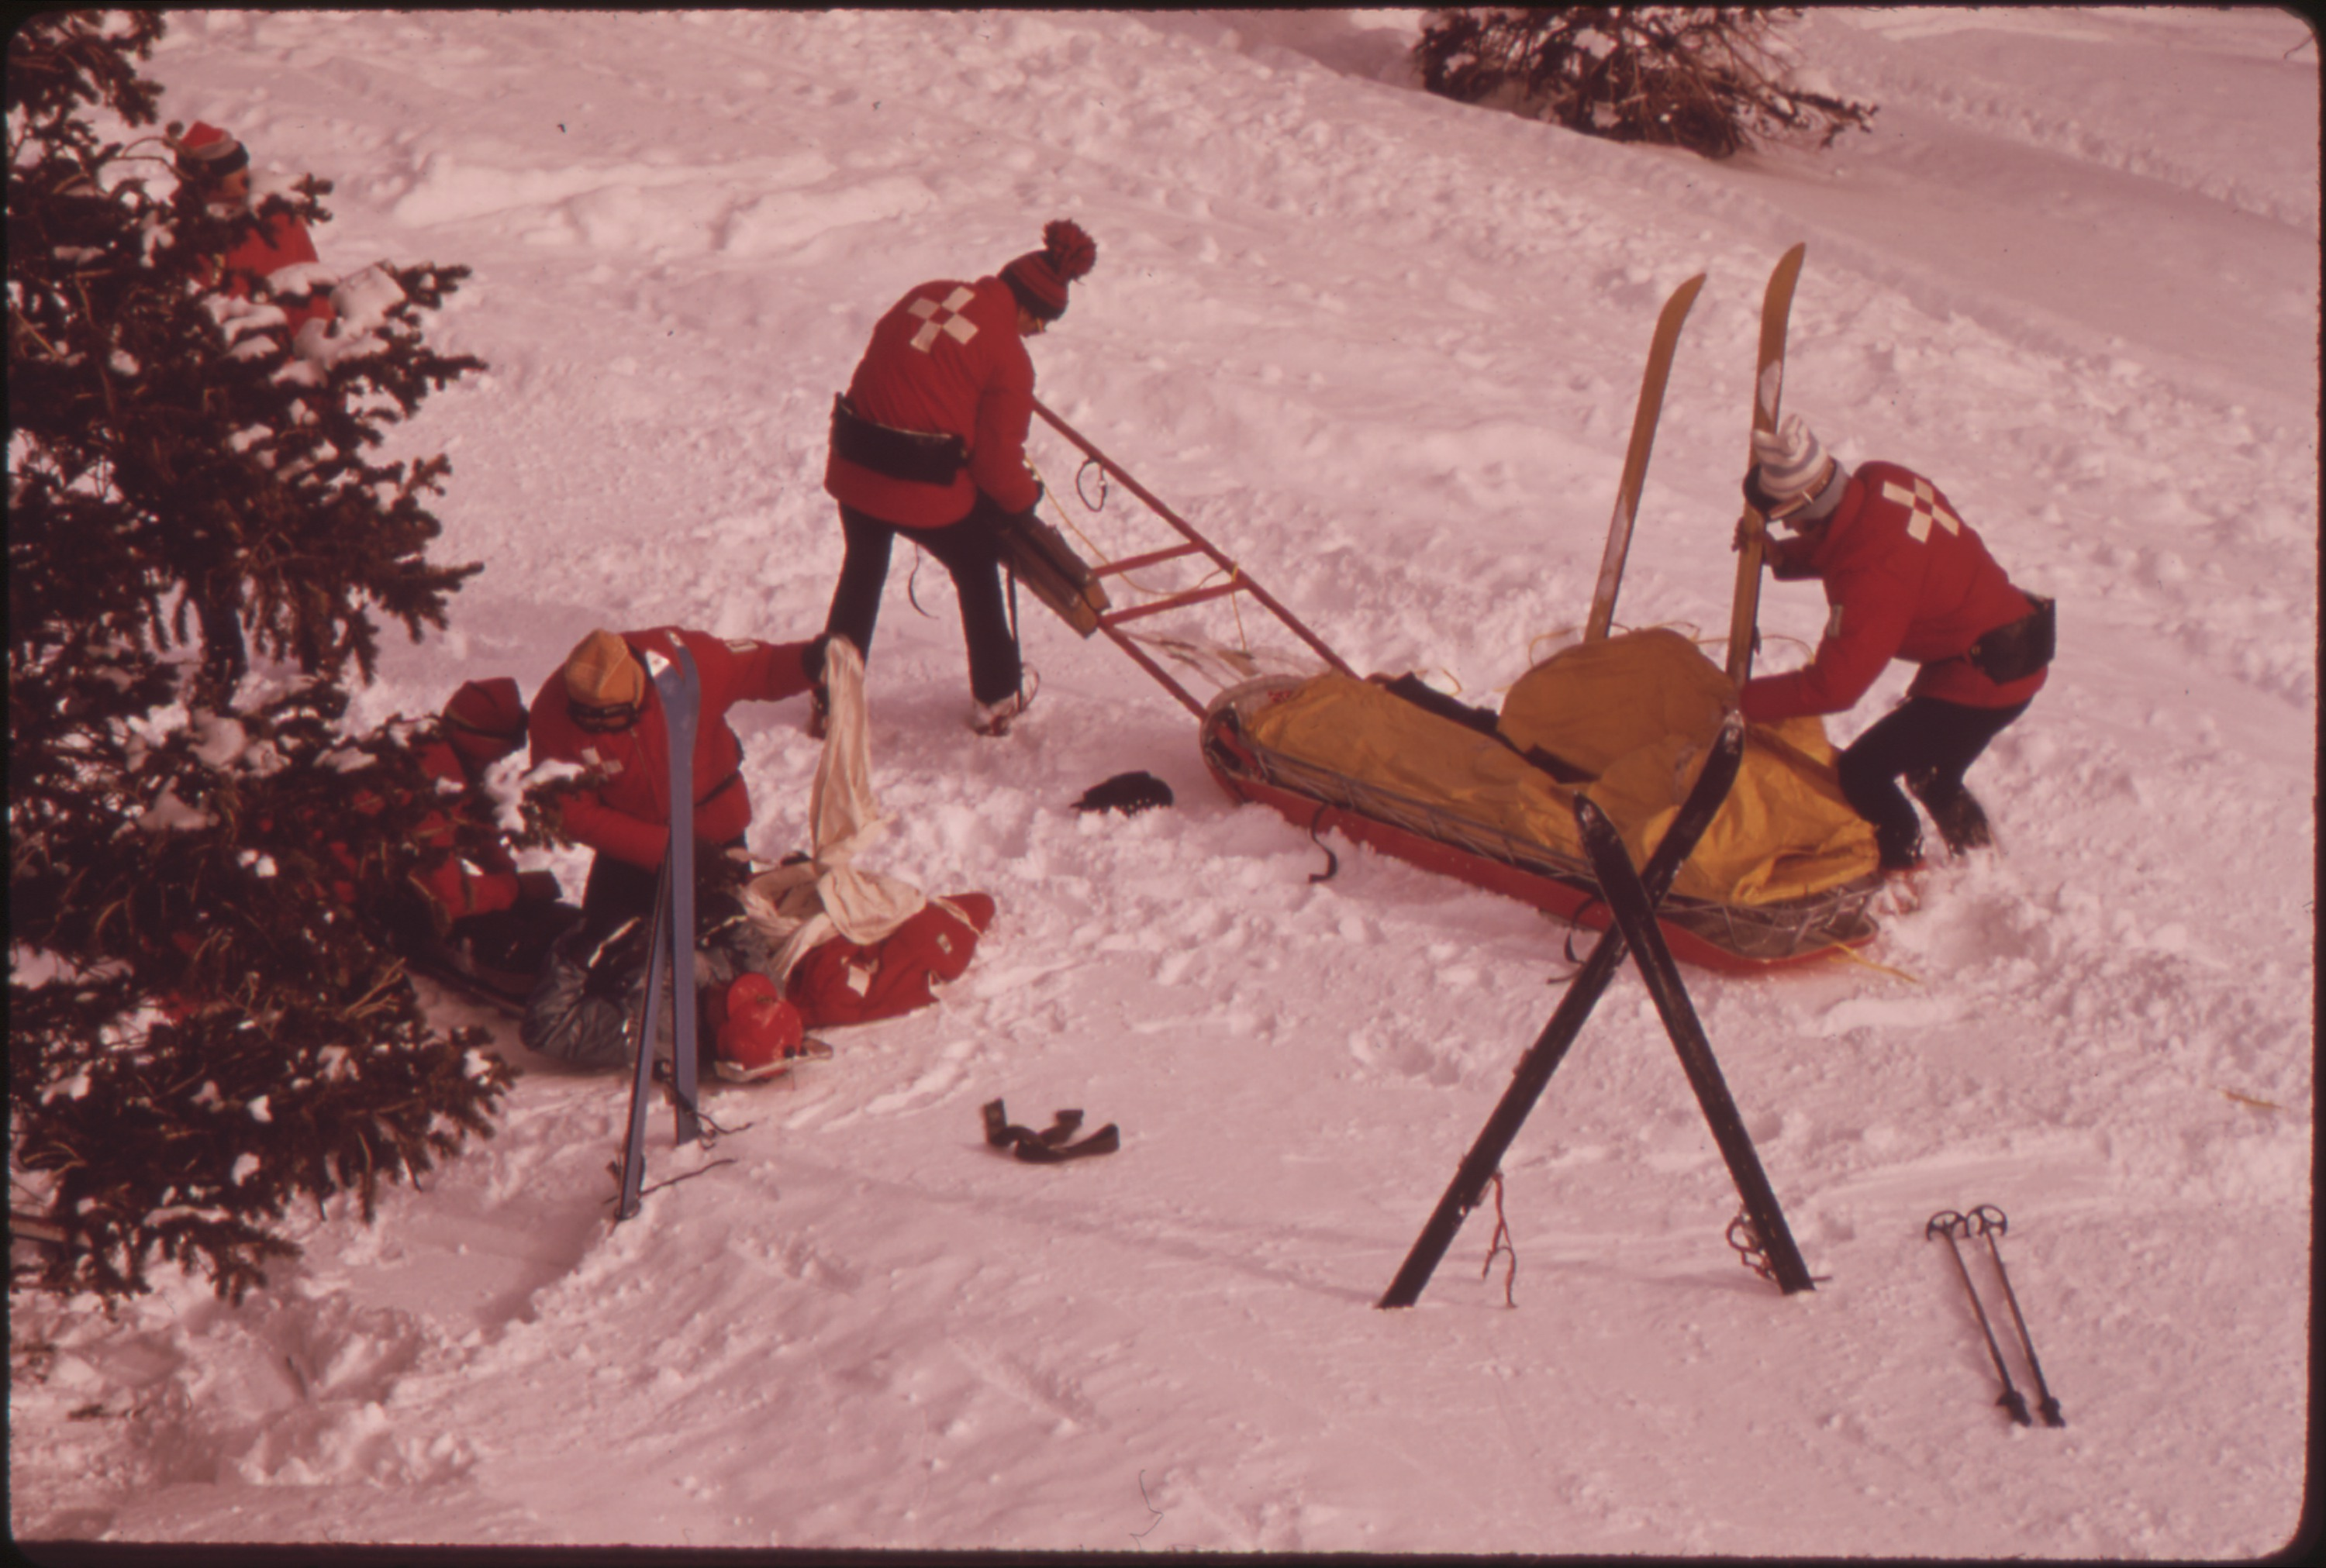 SKI_PATROL_ATTENDS_AN_INJURED_SKIER._CROSSED_SKIS_INDICATE_AN_INJURY_-_NARA_-_554256 (1)